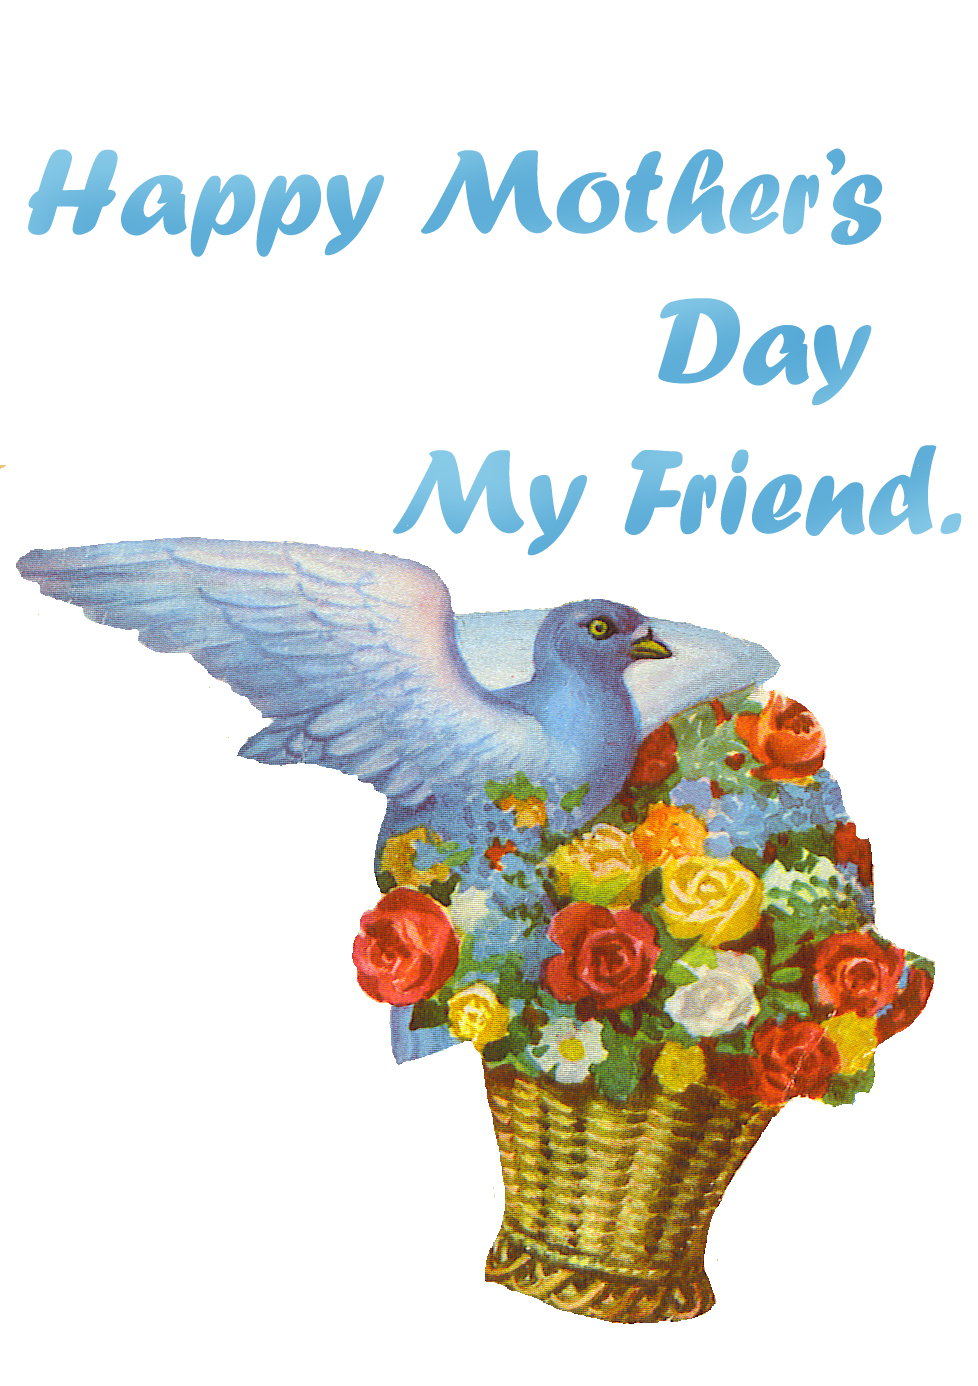 Mothers Day greeting to friend pigeon flowers